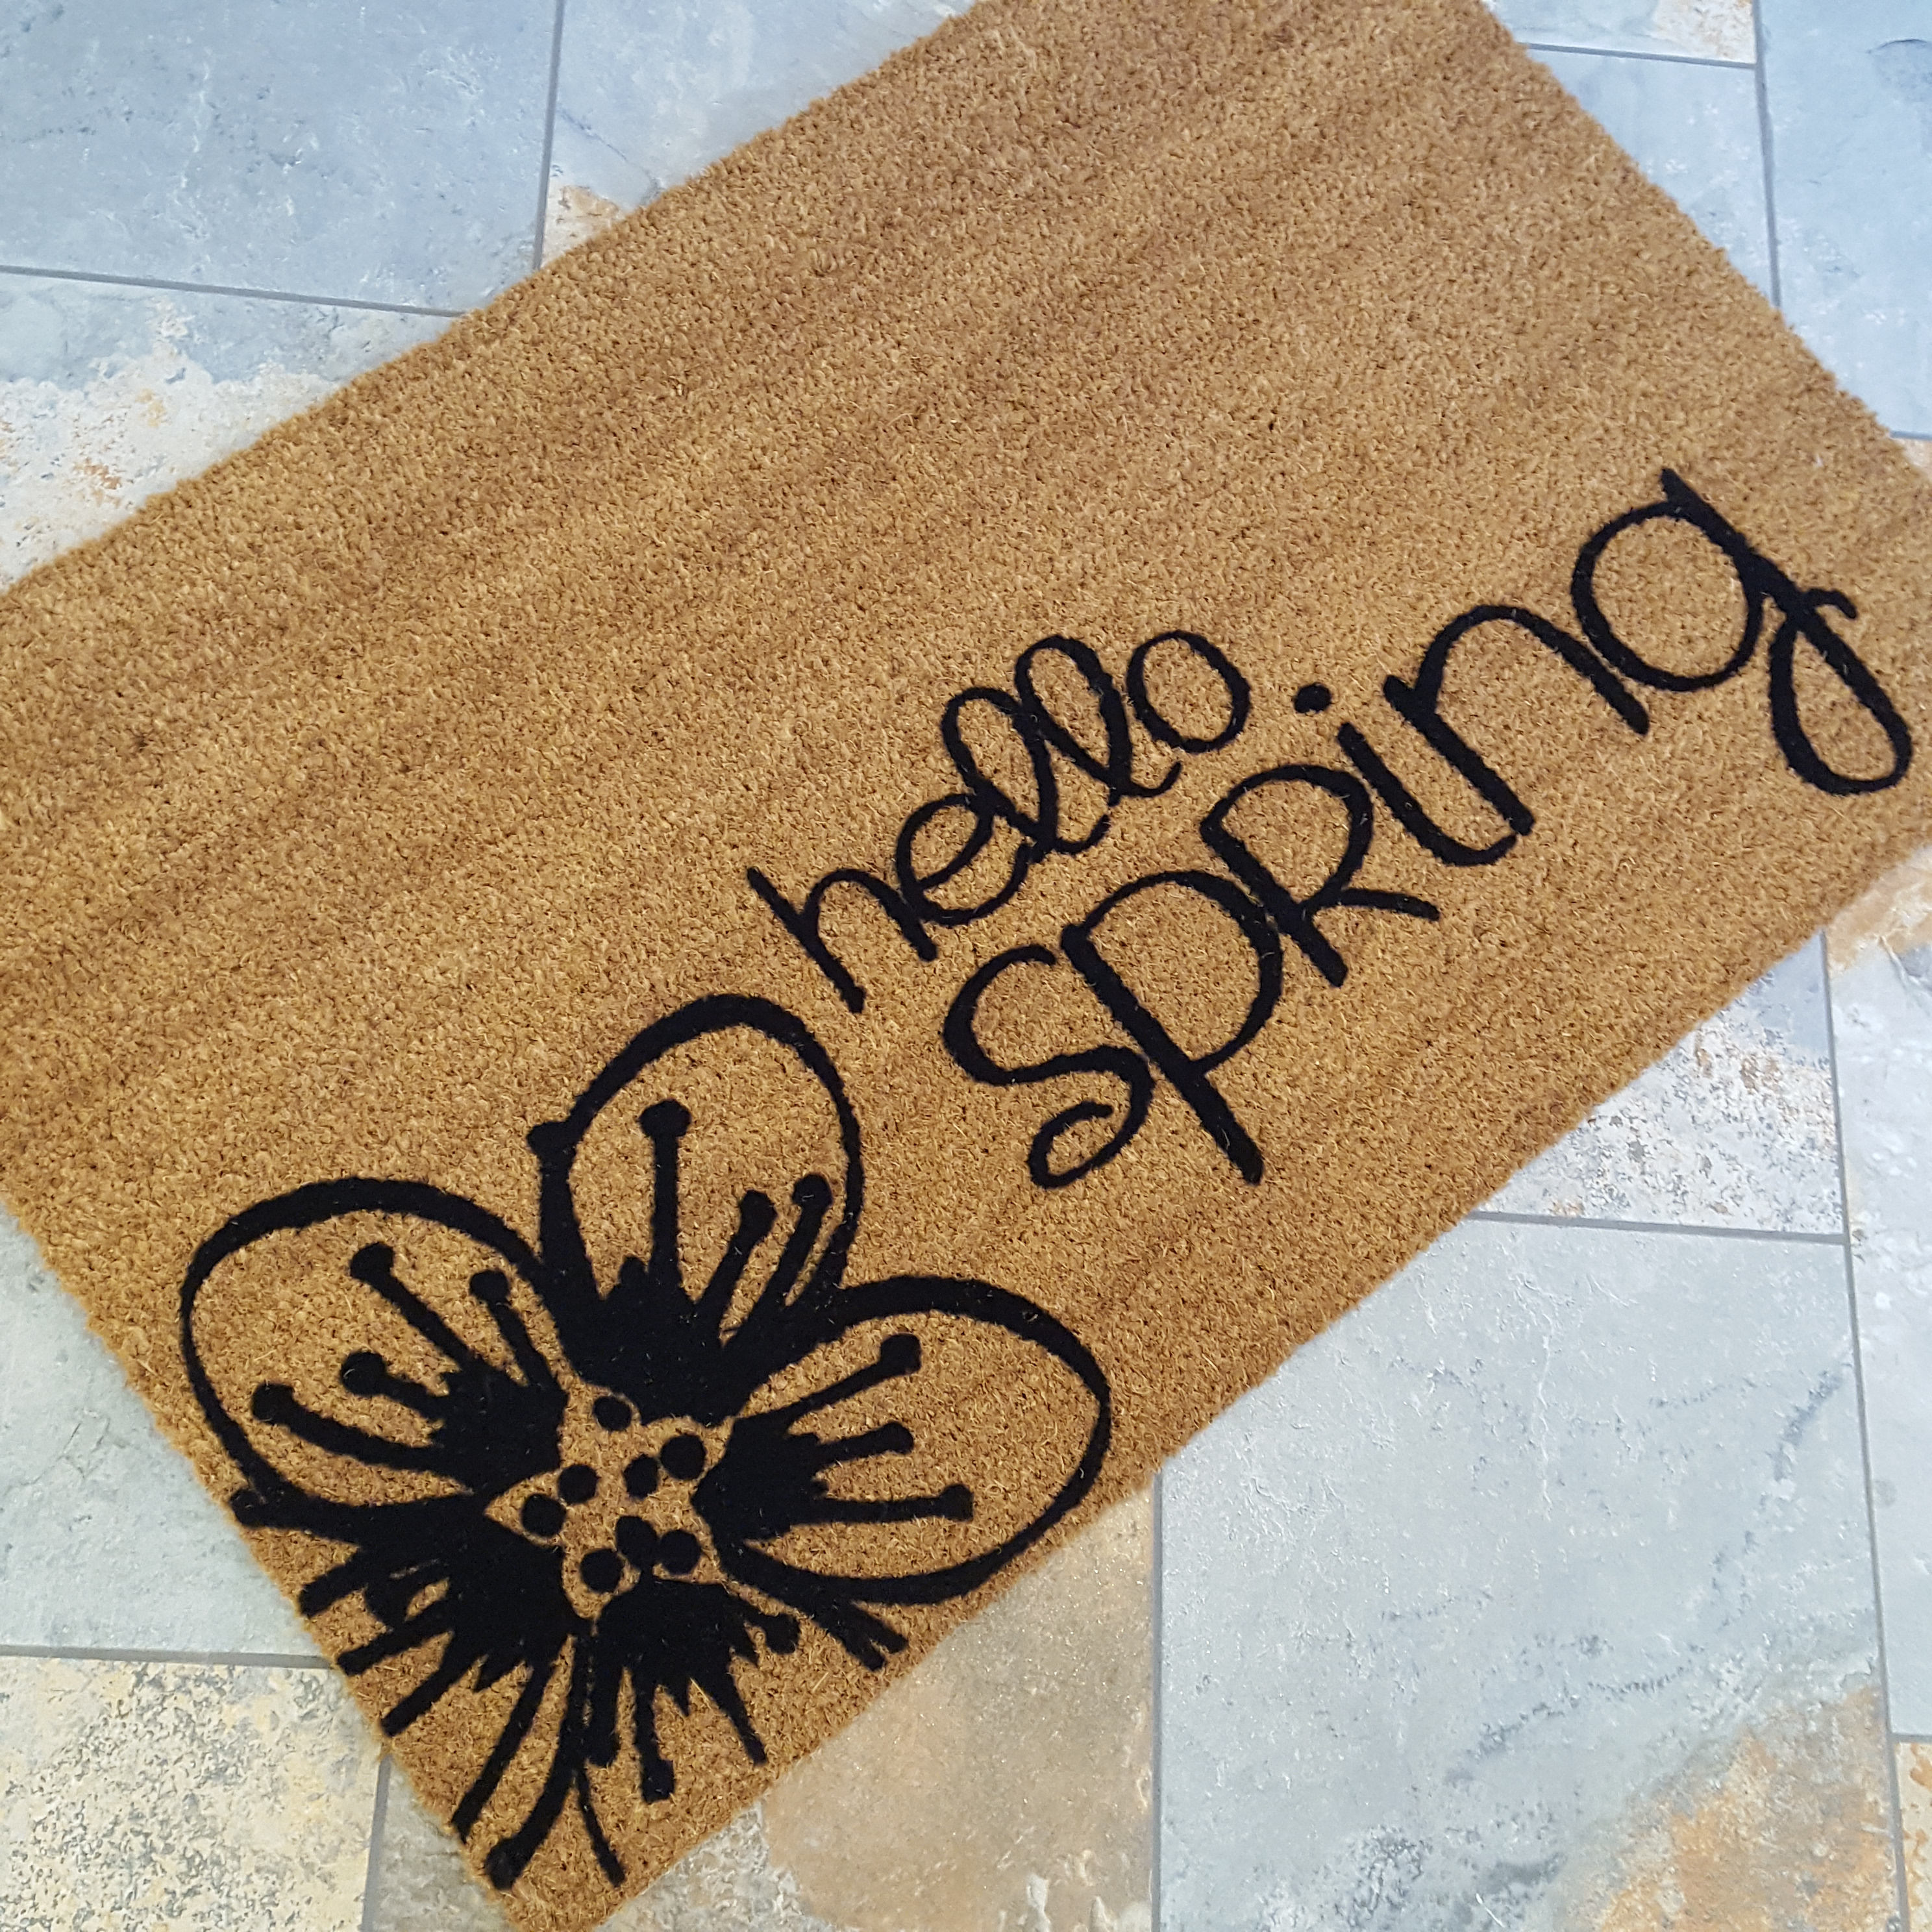 Hello spring doormat spring decor doormat welcome mat easter hello spring doormat spring decor doormat welcome mat easter gifts gifts for her gifts for him housewarming gift flower gift negle Choice Image